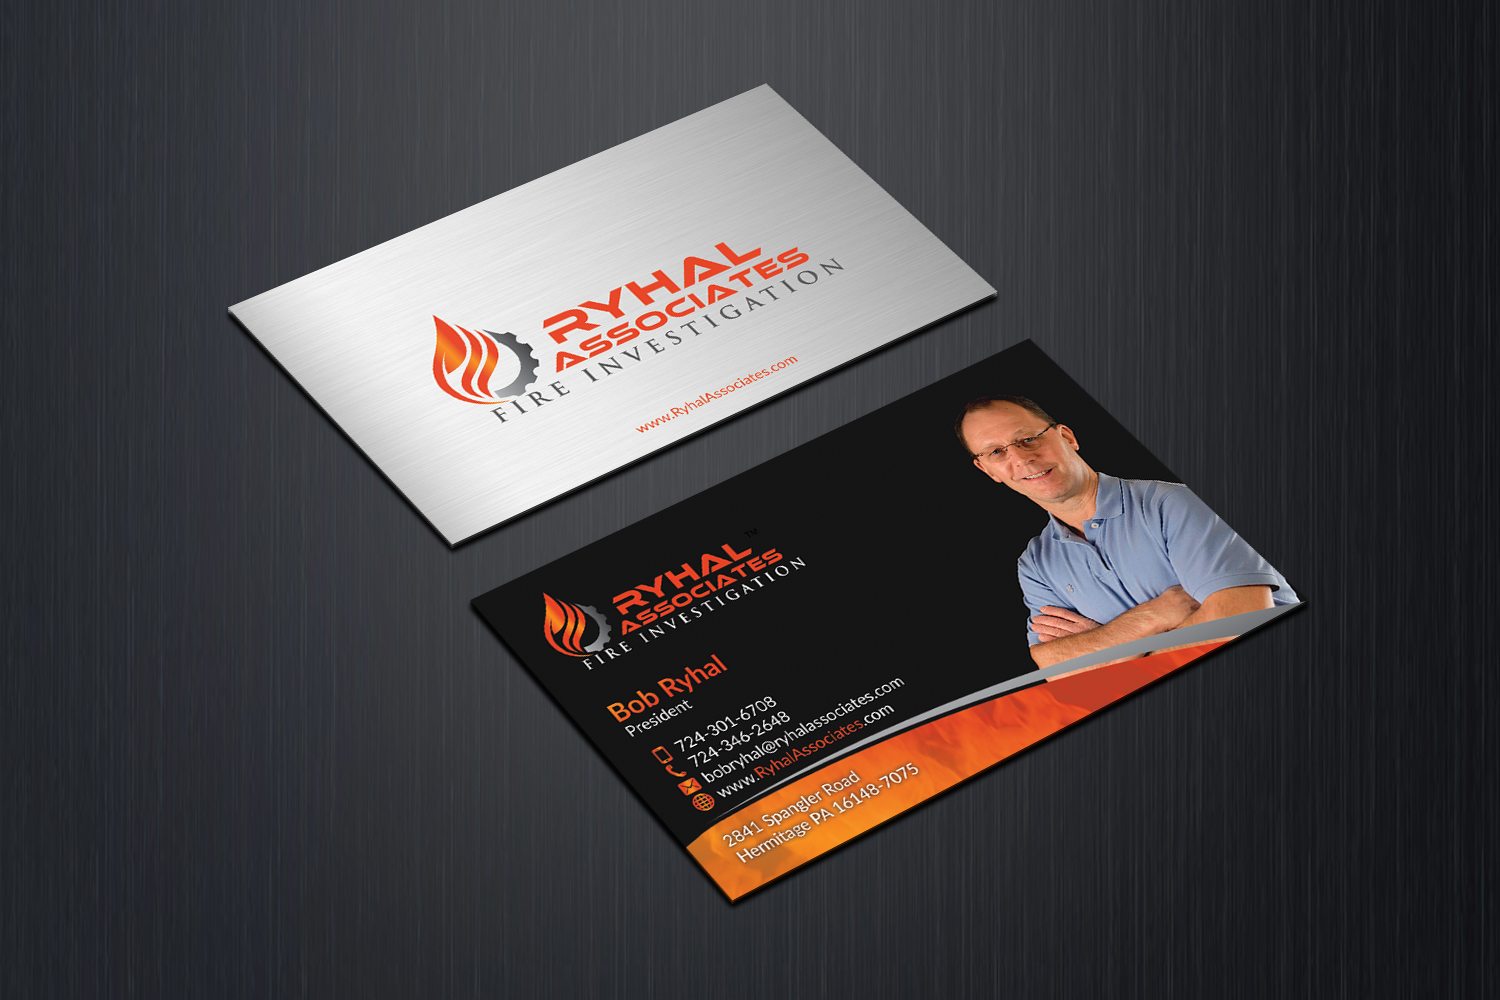 Serious masculine private investigator business card design for a business card design by nuhanenterprise for this project design 10147953 colourmoves